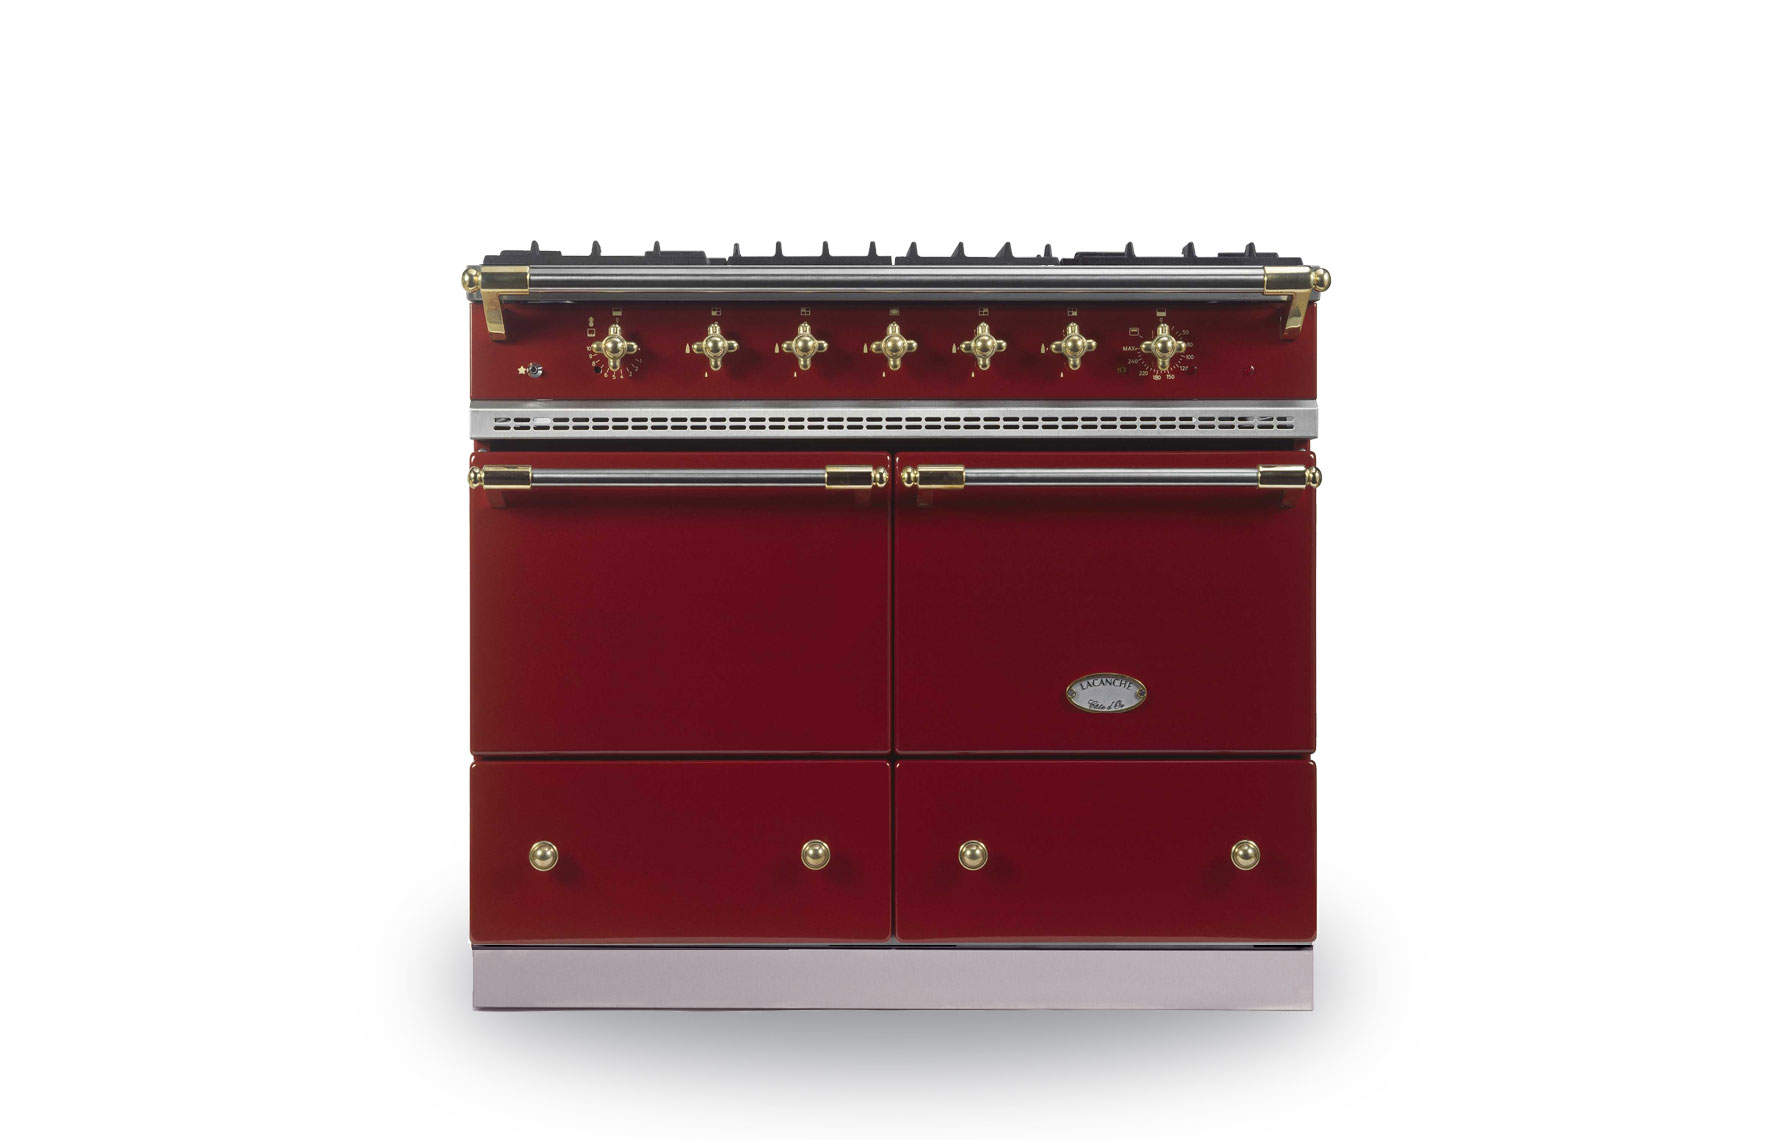 lacanche cluny classic 100 range cookers. Black Bedroom Furniture Sets. Home Design Ideas